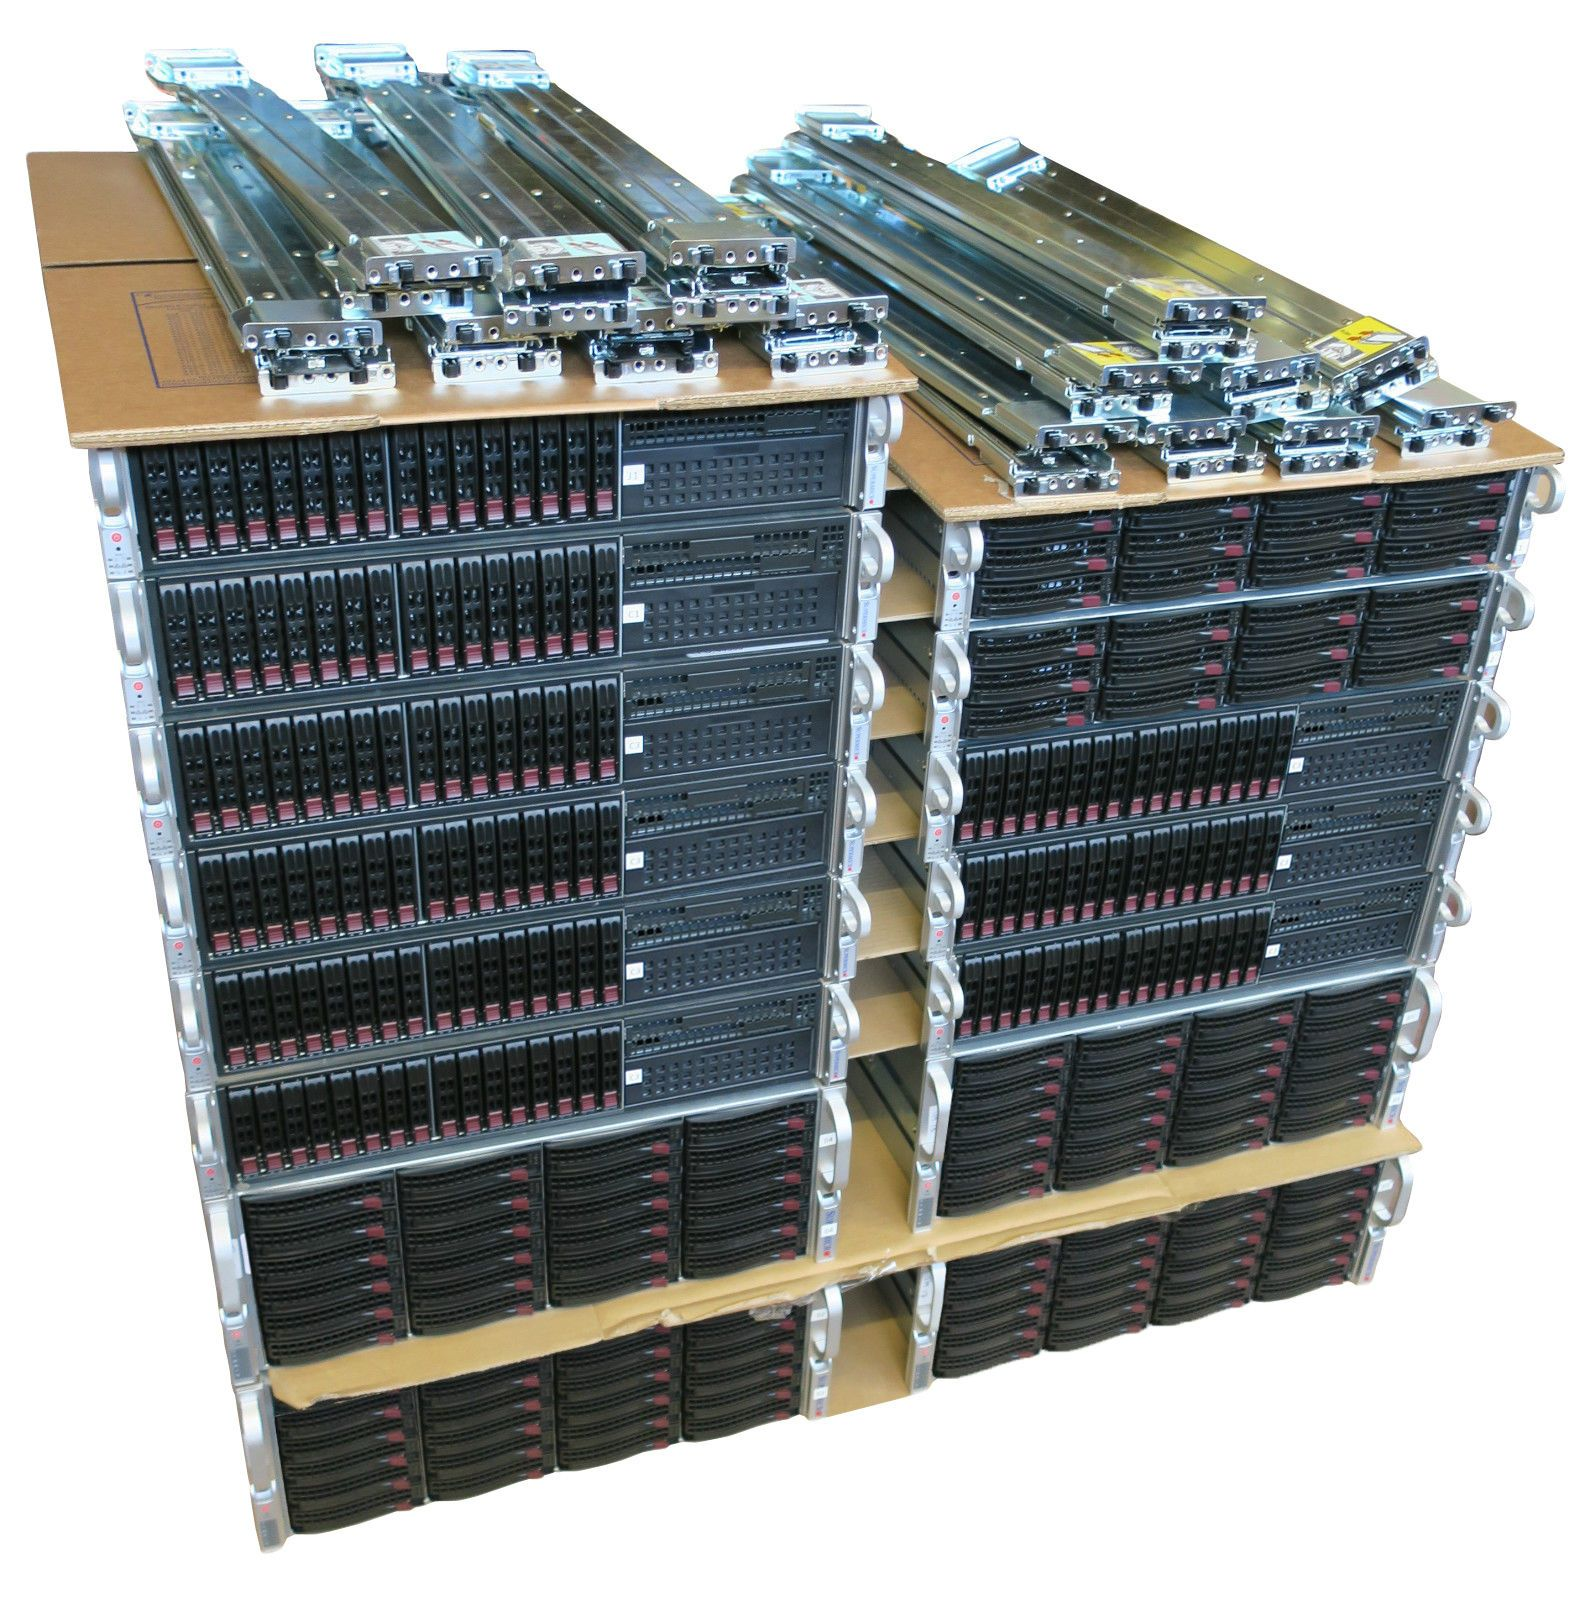 Supermicro 336TB High Specification Fast Storage System - new in January  2015